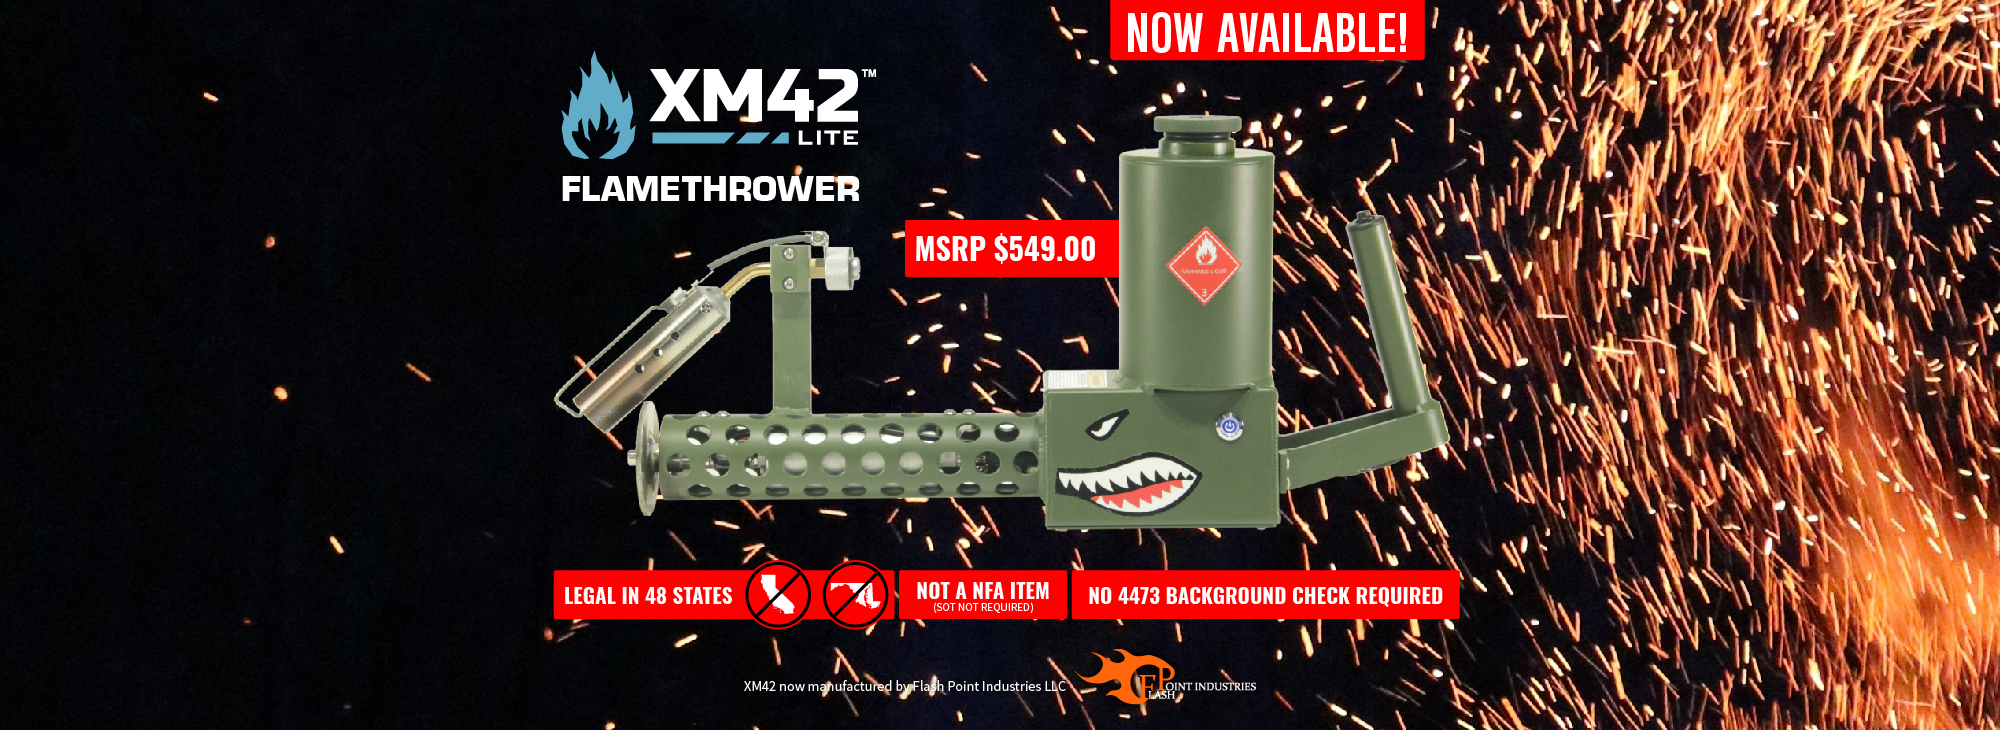 XM42 Lite Now Available